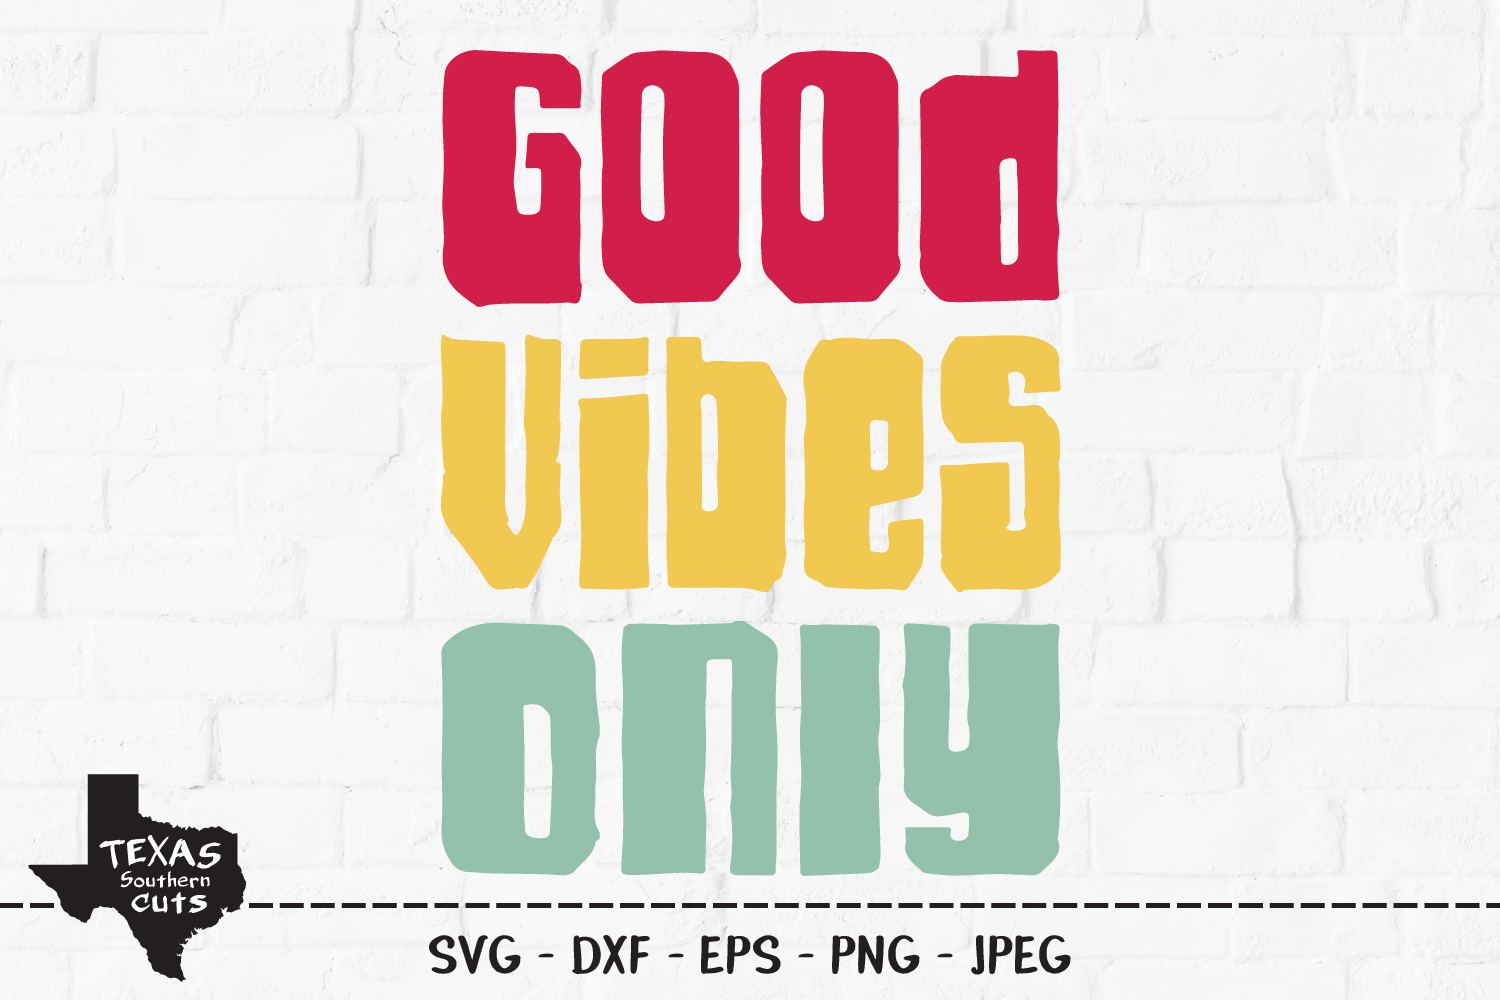 Good Vibes Only Shirt Design Graphic By Texassoutherncuts